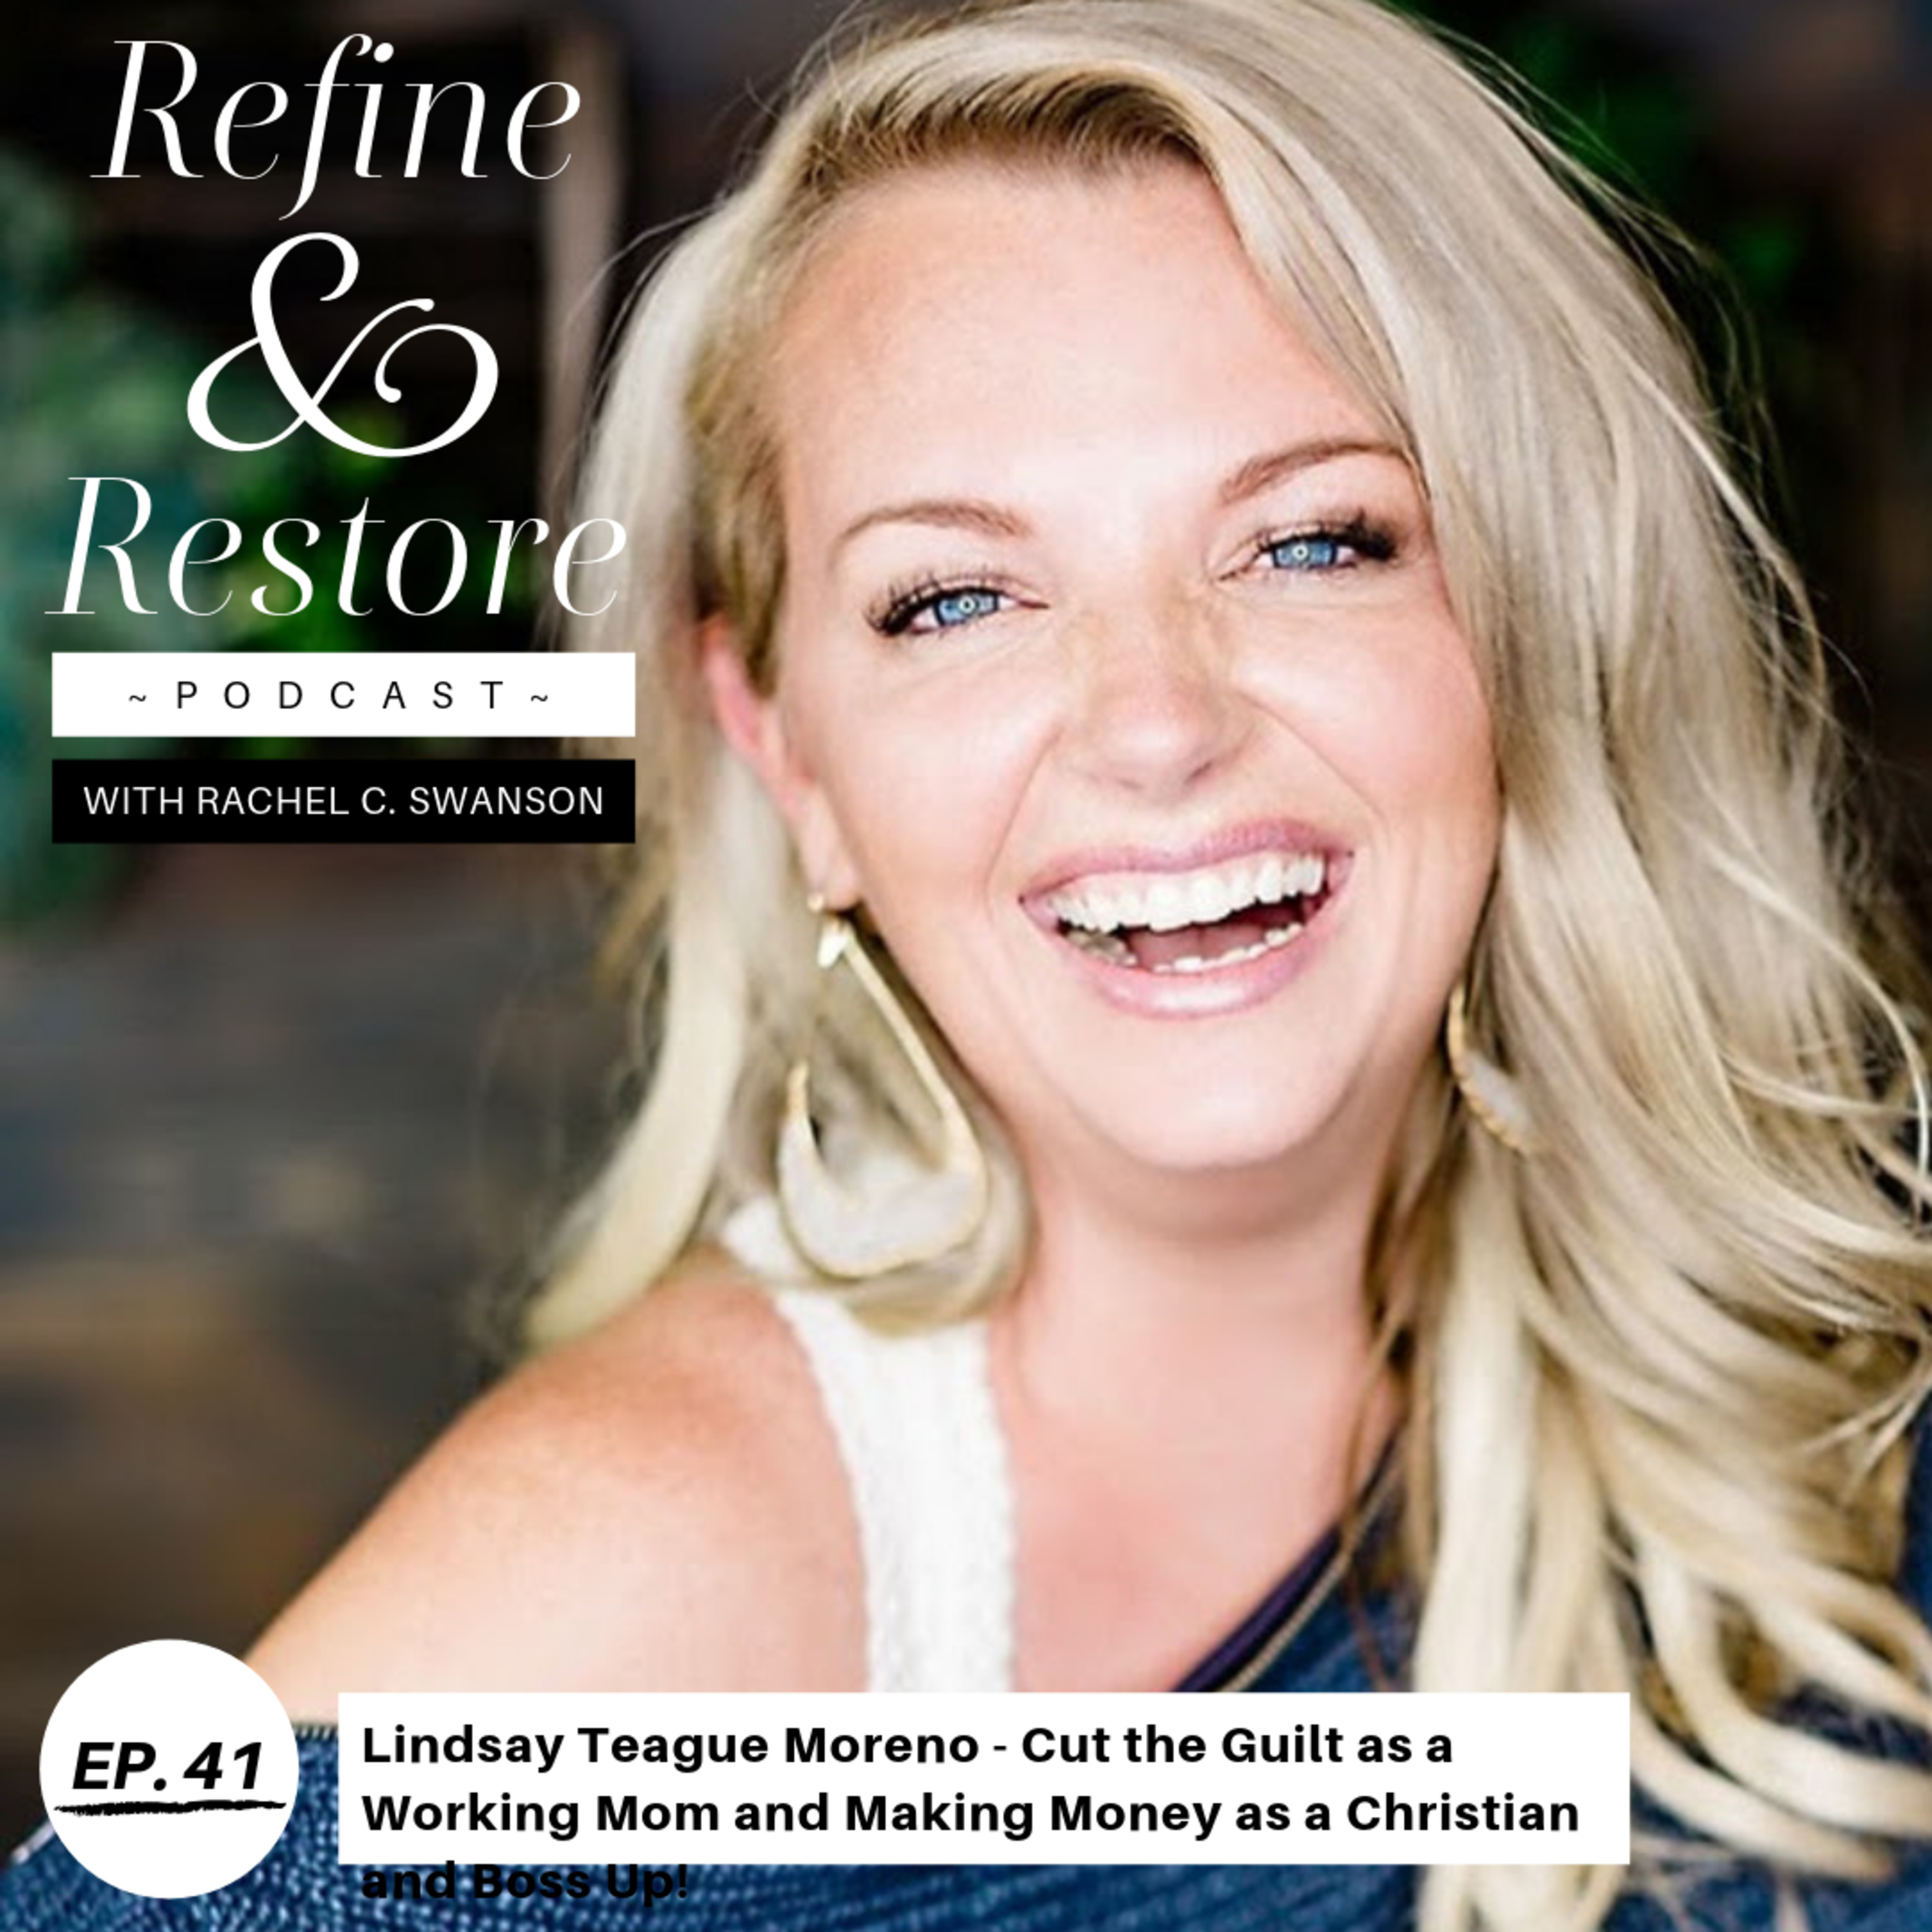 41: Lindsay Teague Moreno - Cut the Guilt as a Working Mom and Making Money as a Christian